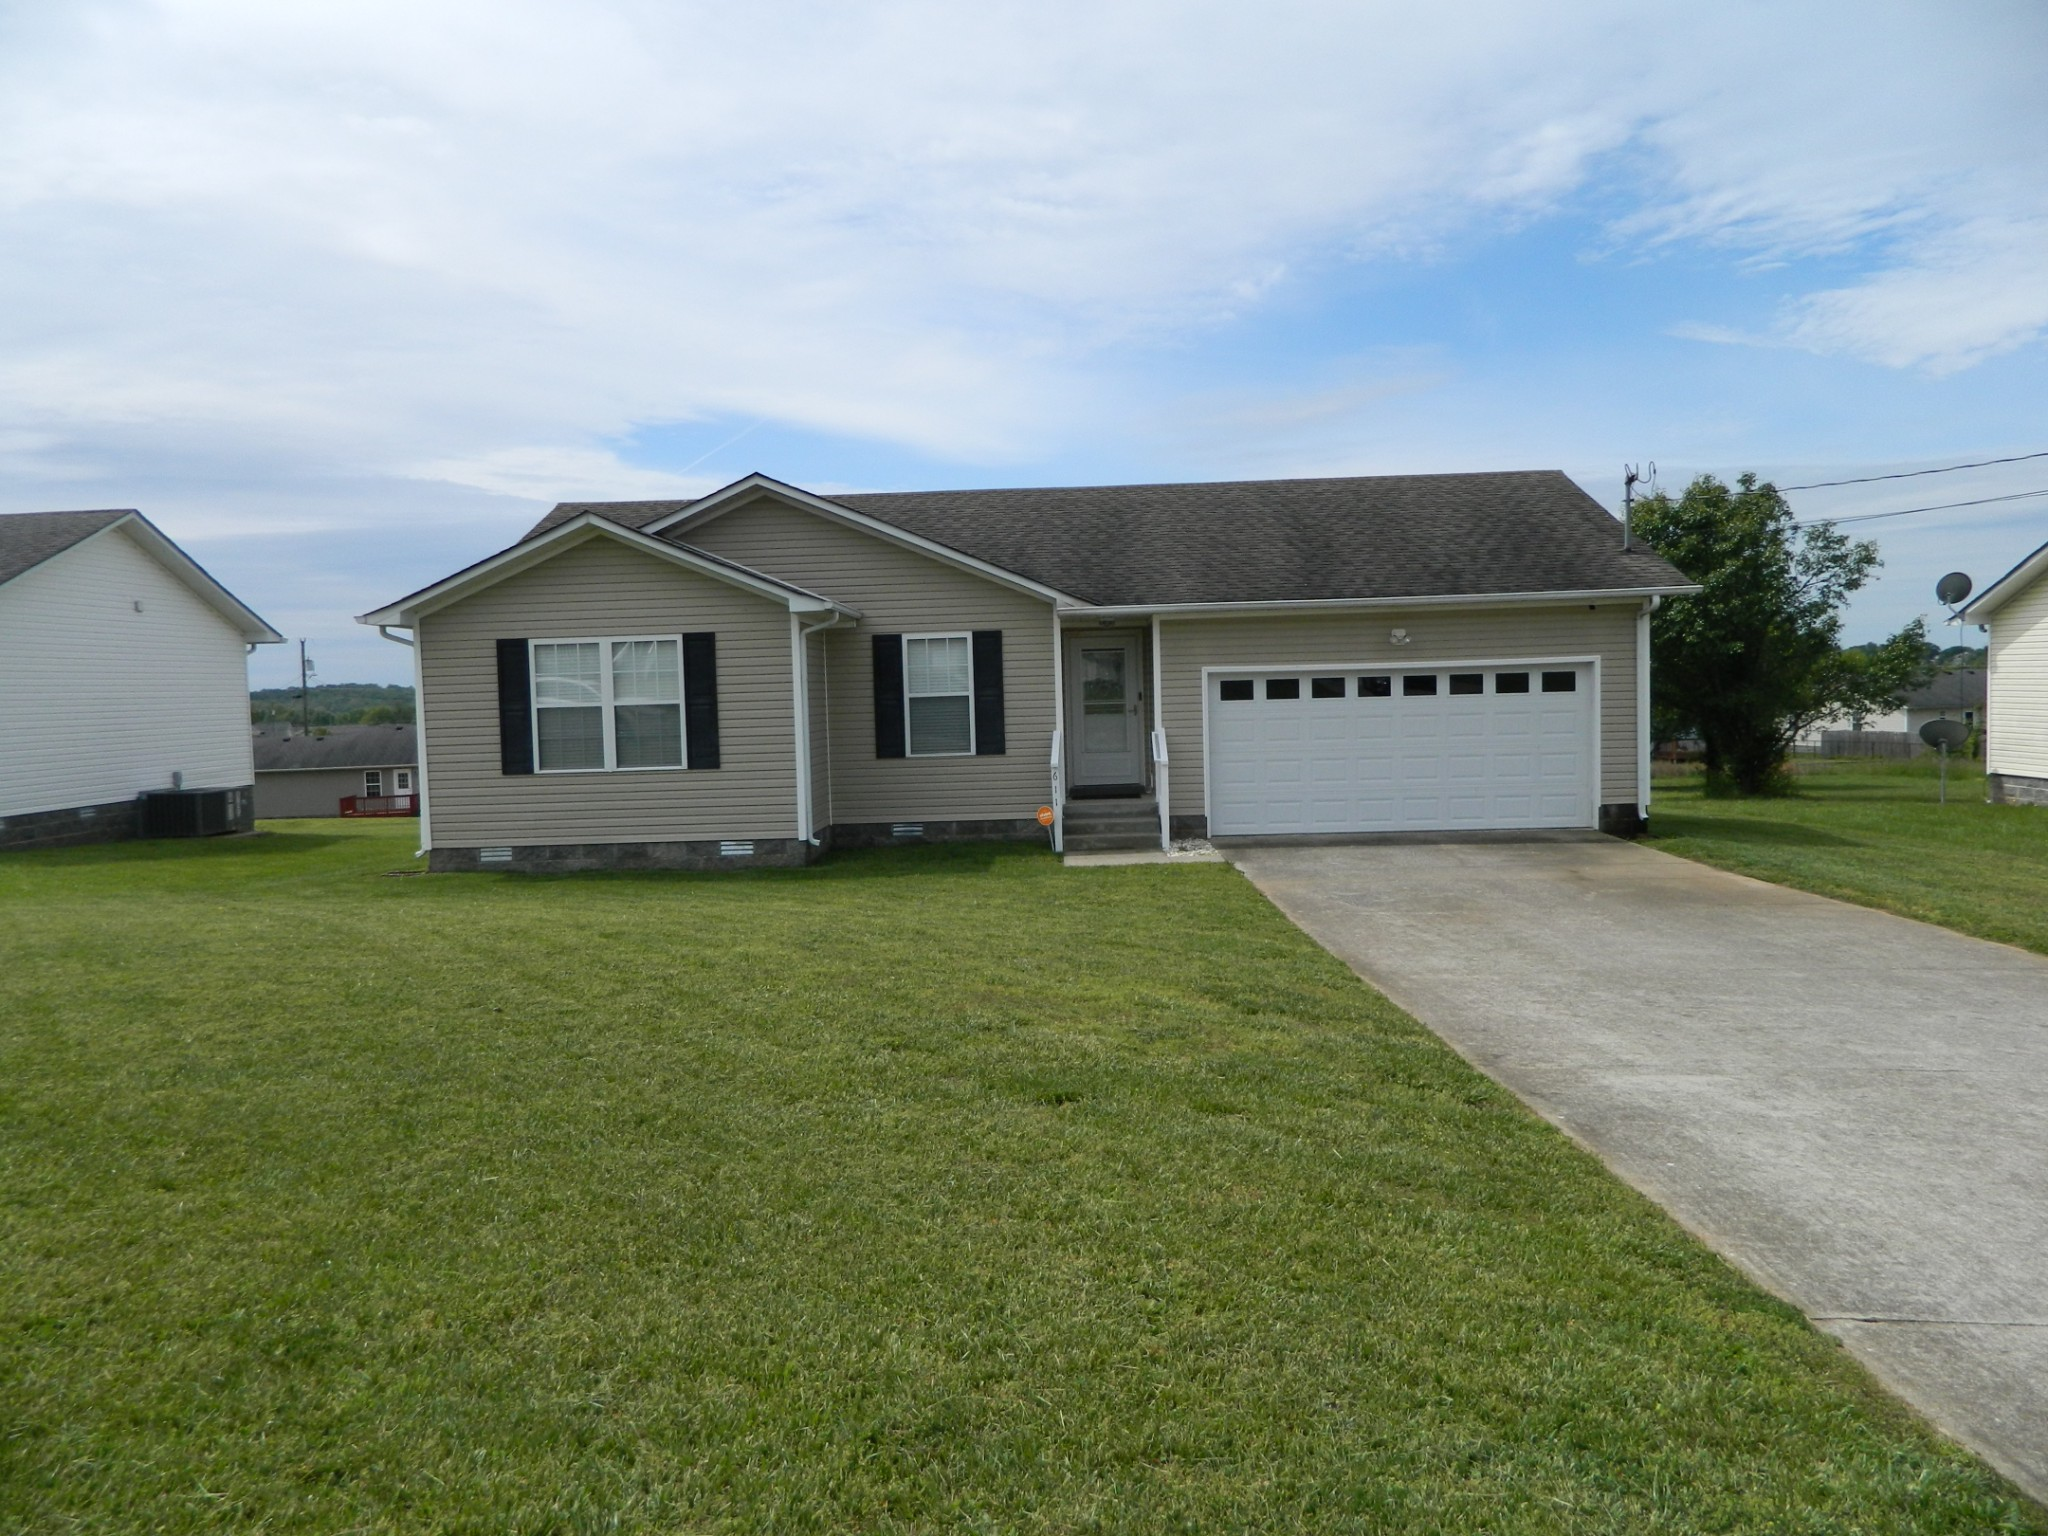 611 Avondale Rd, Oak Grove, KY 42262 - Oak Grove, KY real estate listing